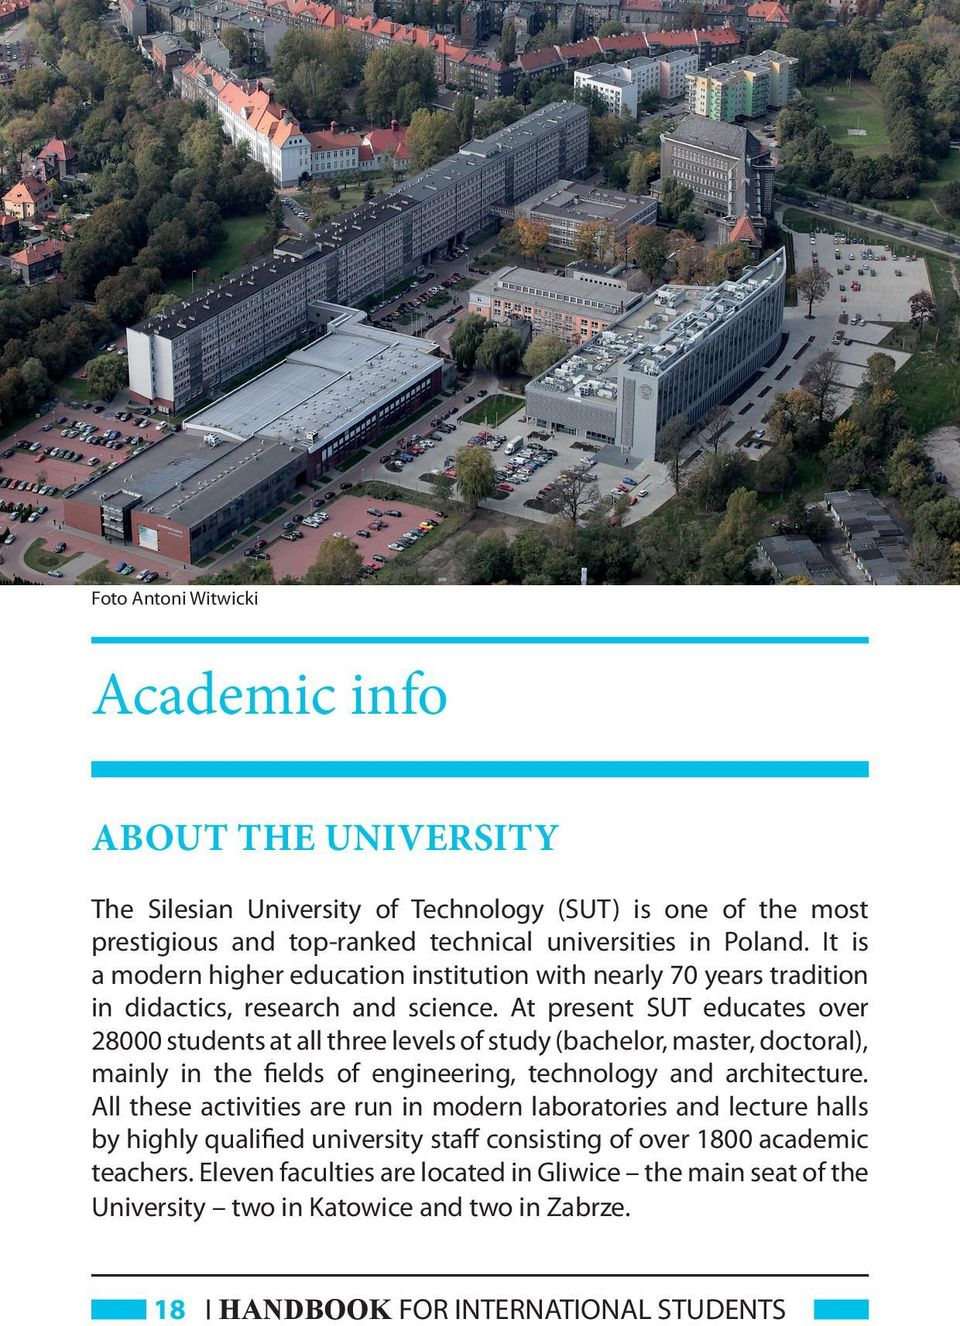 At present SUT educates over 28000 students at all three levels of study (bachelor, master, doctoral), mainly in the fields of engineering, technology and architecture.